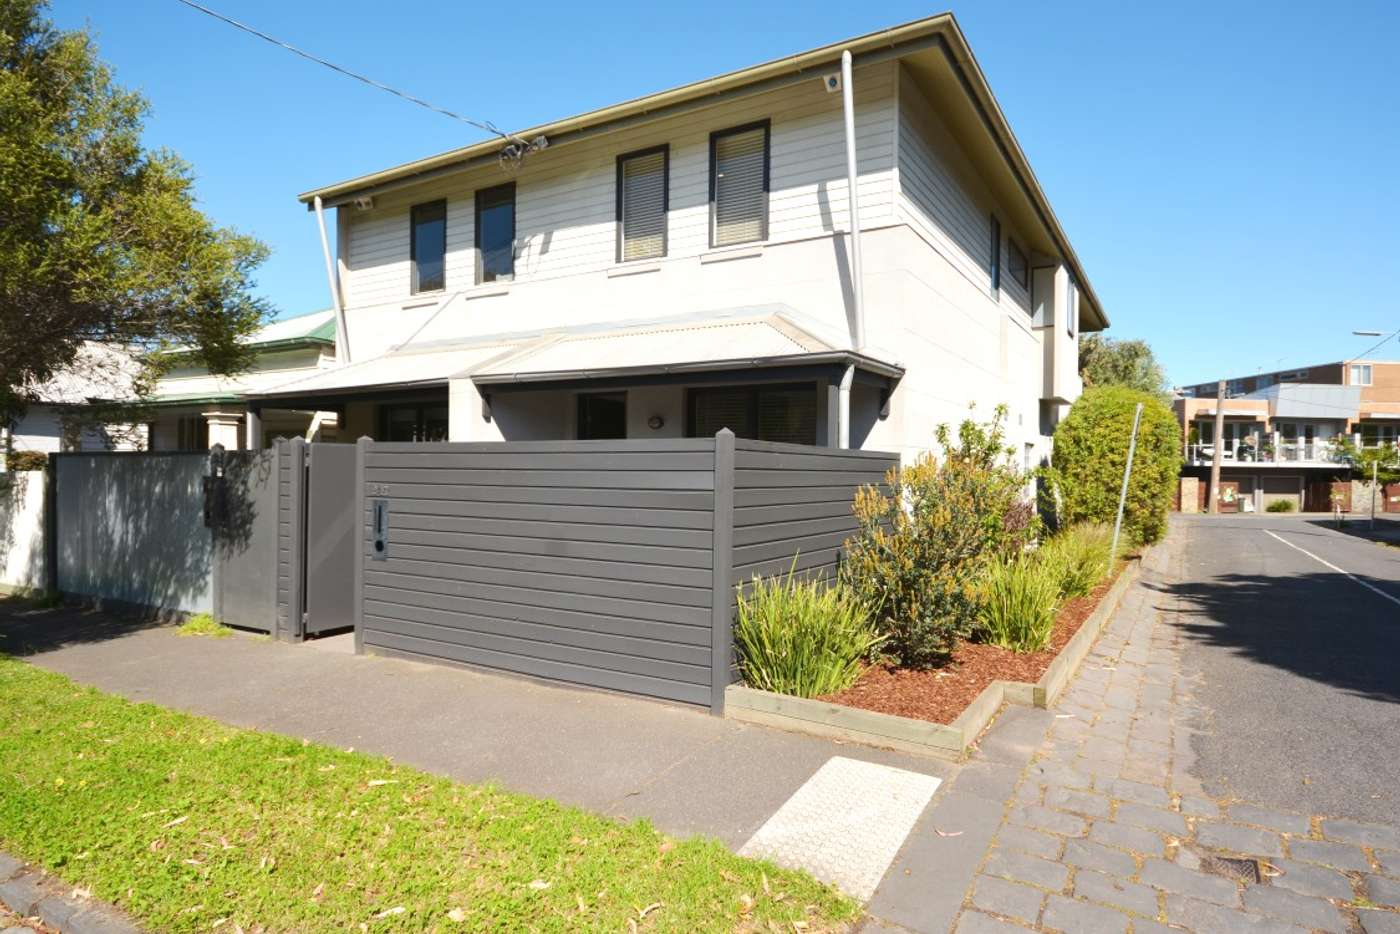 Main view of Homely townhouse listing, 247 Hotham Street, Elsternwick VIC 3185